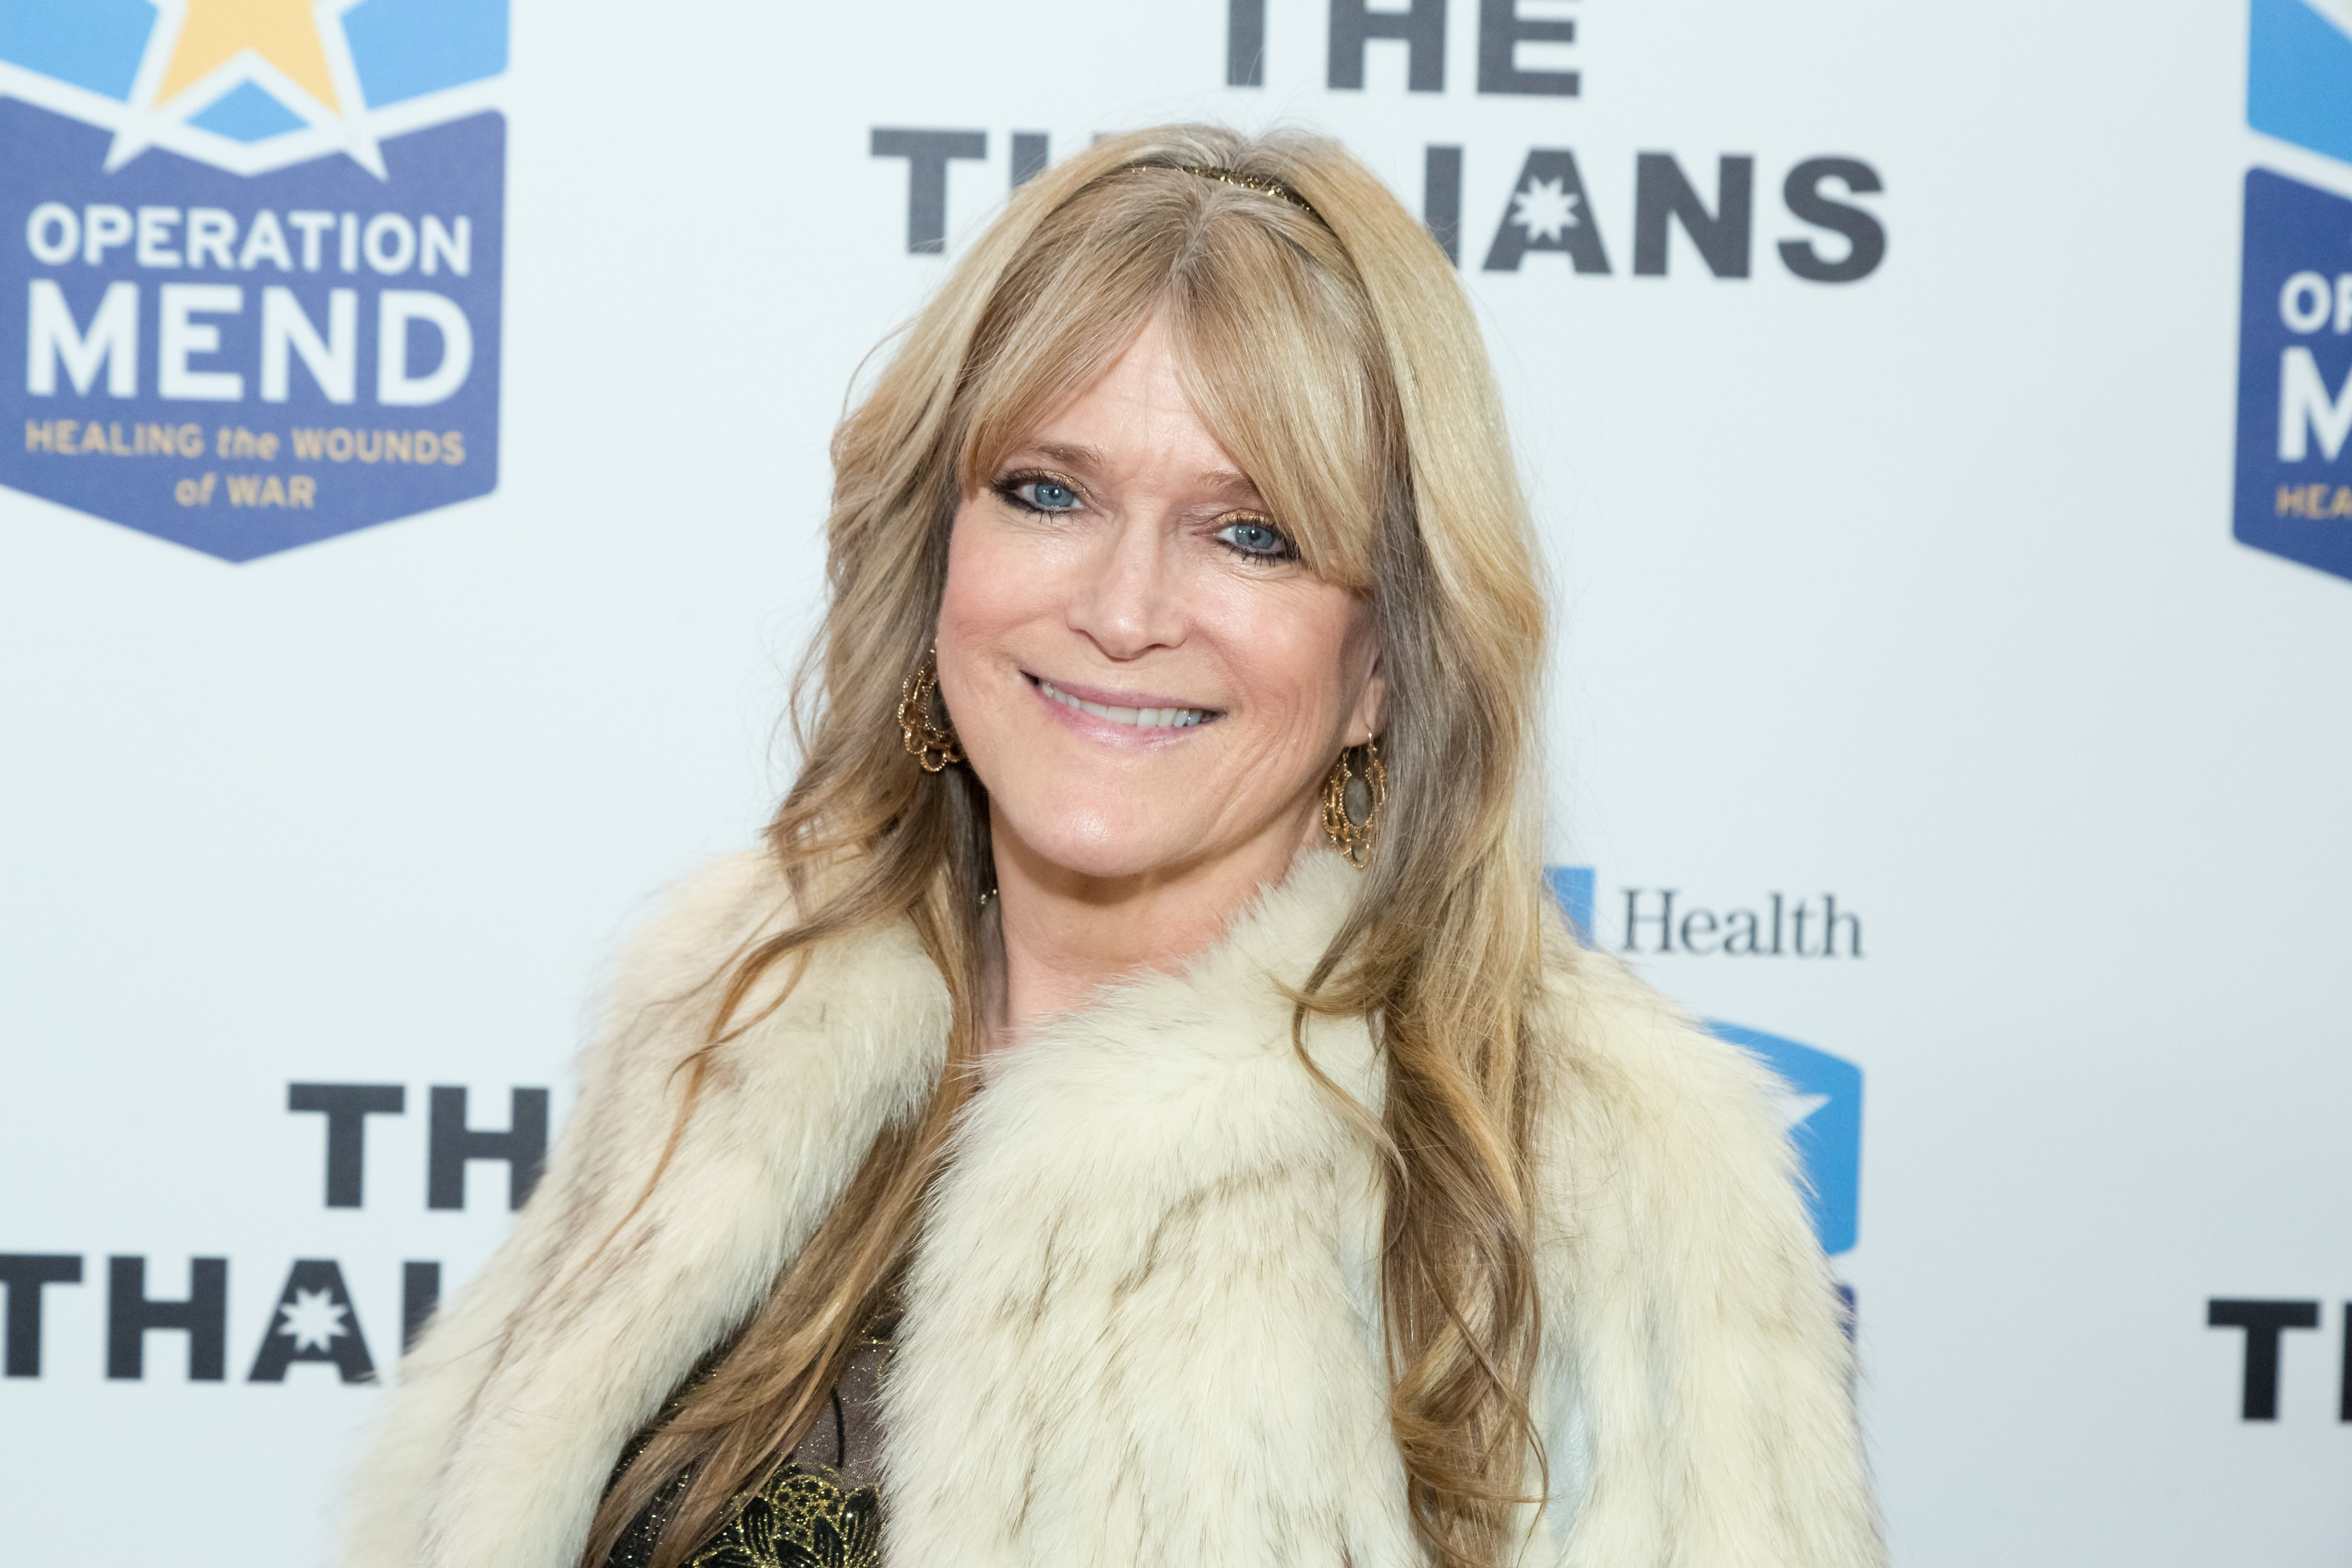 Susan Olsen attends The Thalians Holiday Party in Los Angeles, California on December 1, 2018 | Photo: Getty Images